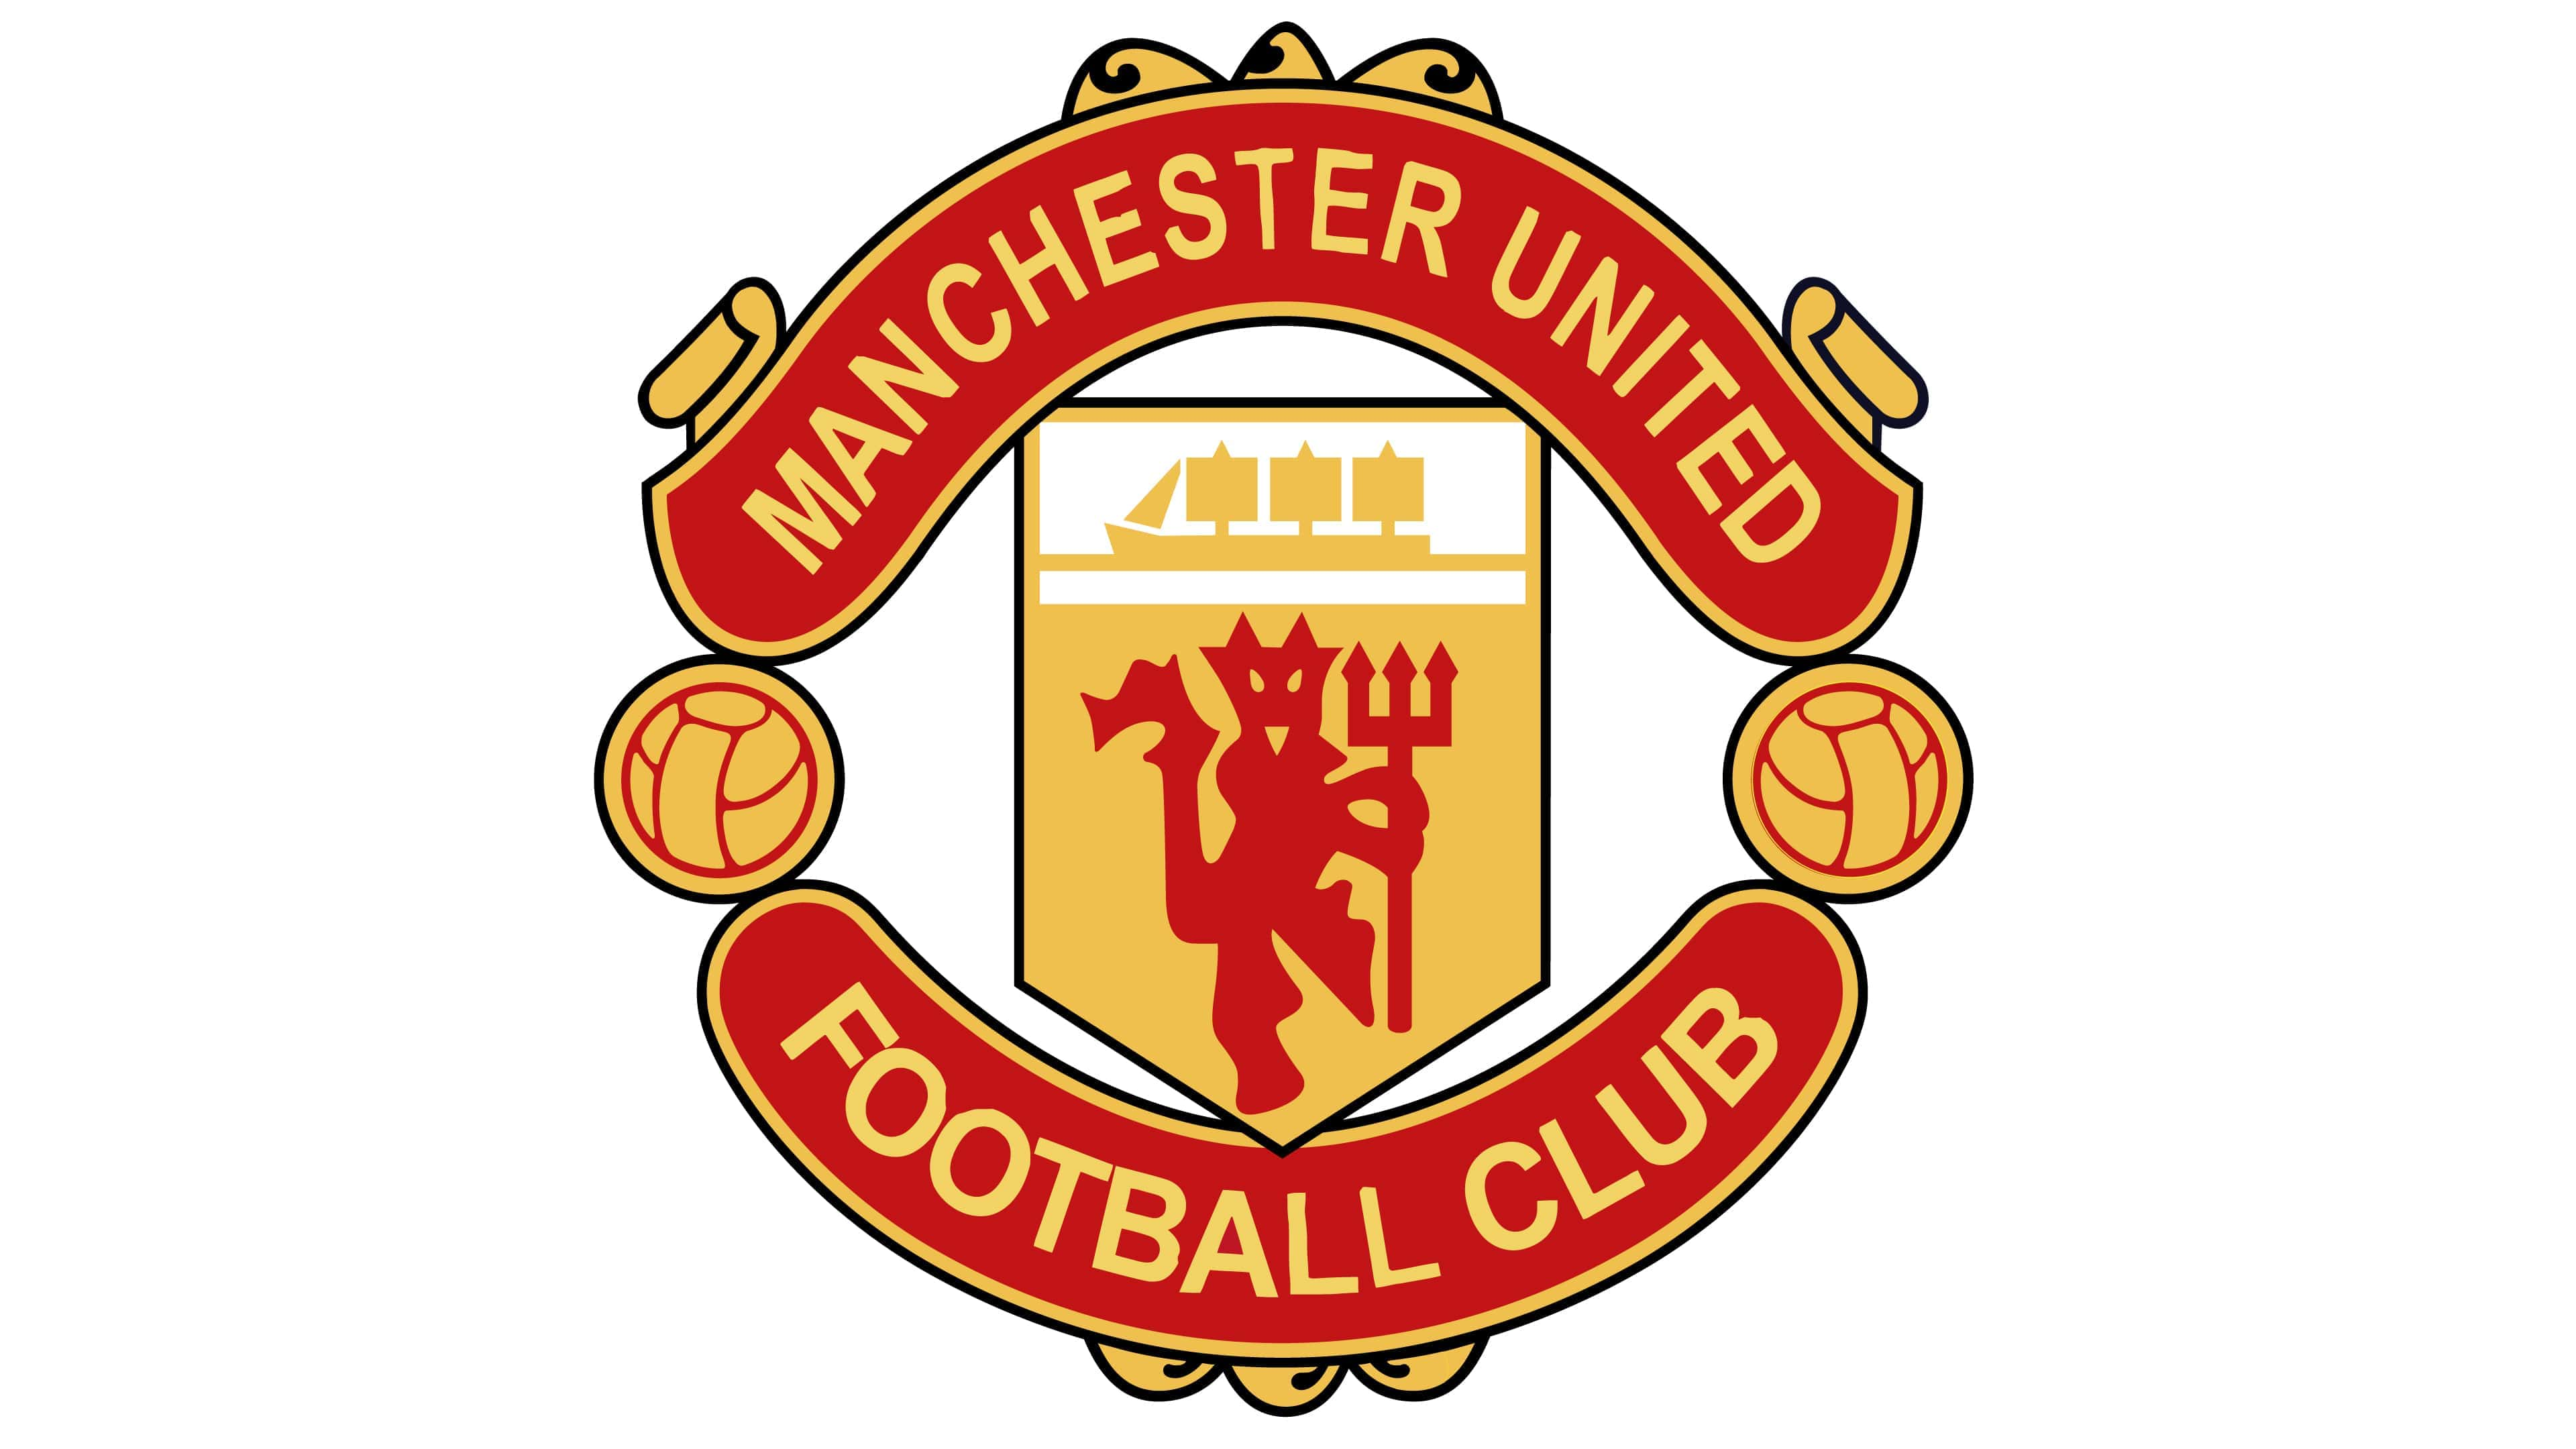 Manchester United Logo And Symbol Meaning History Png